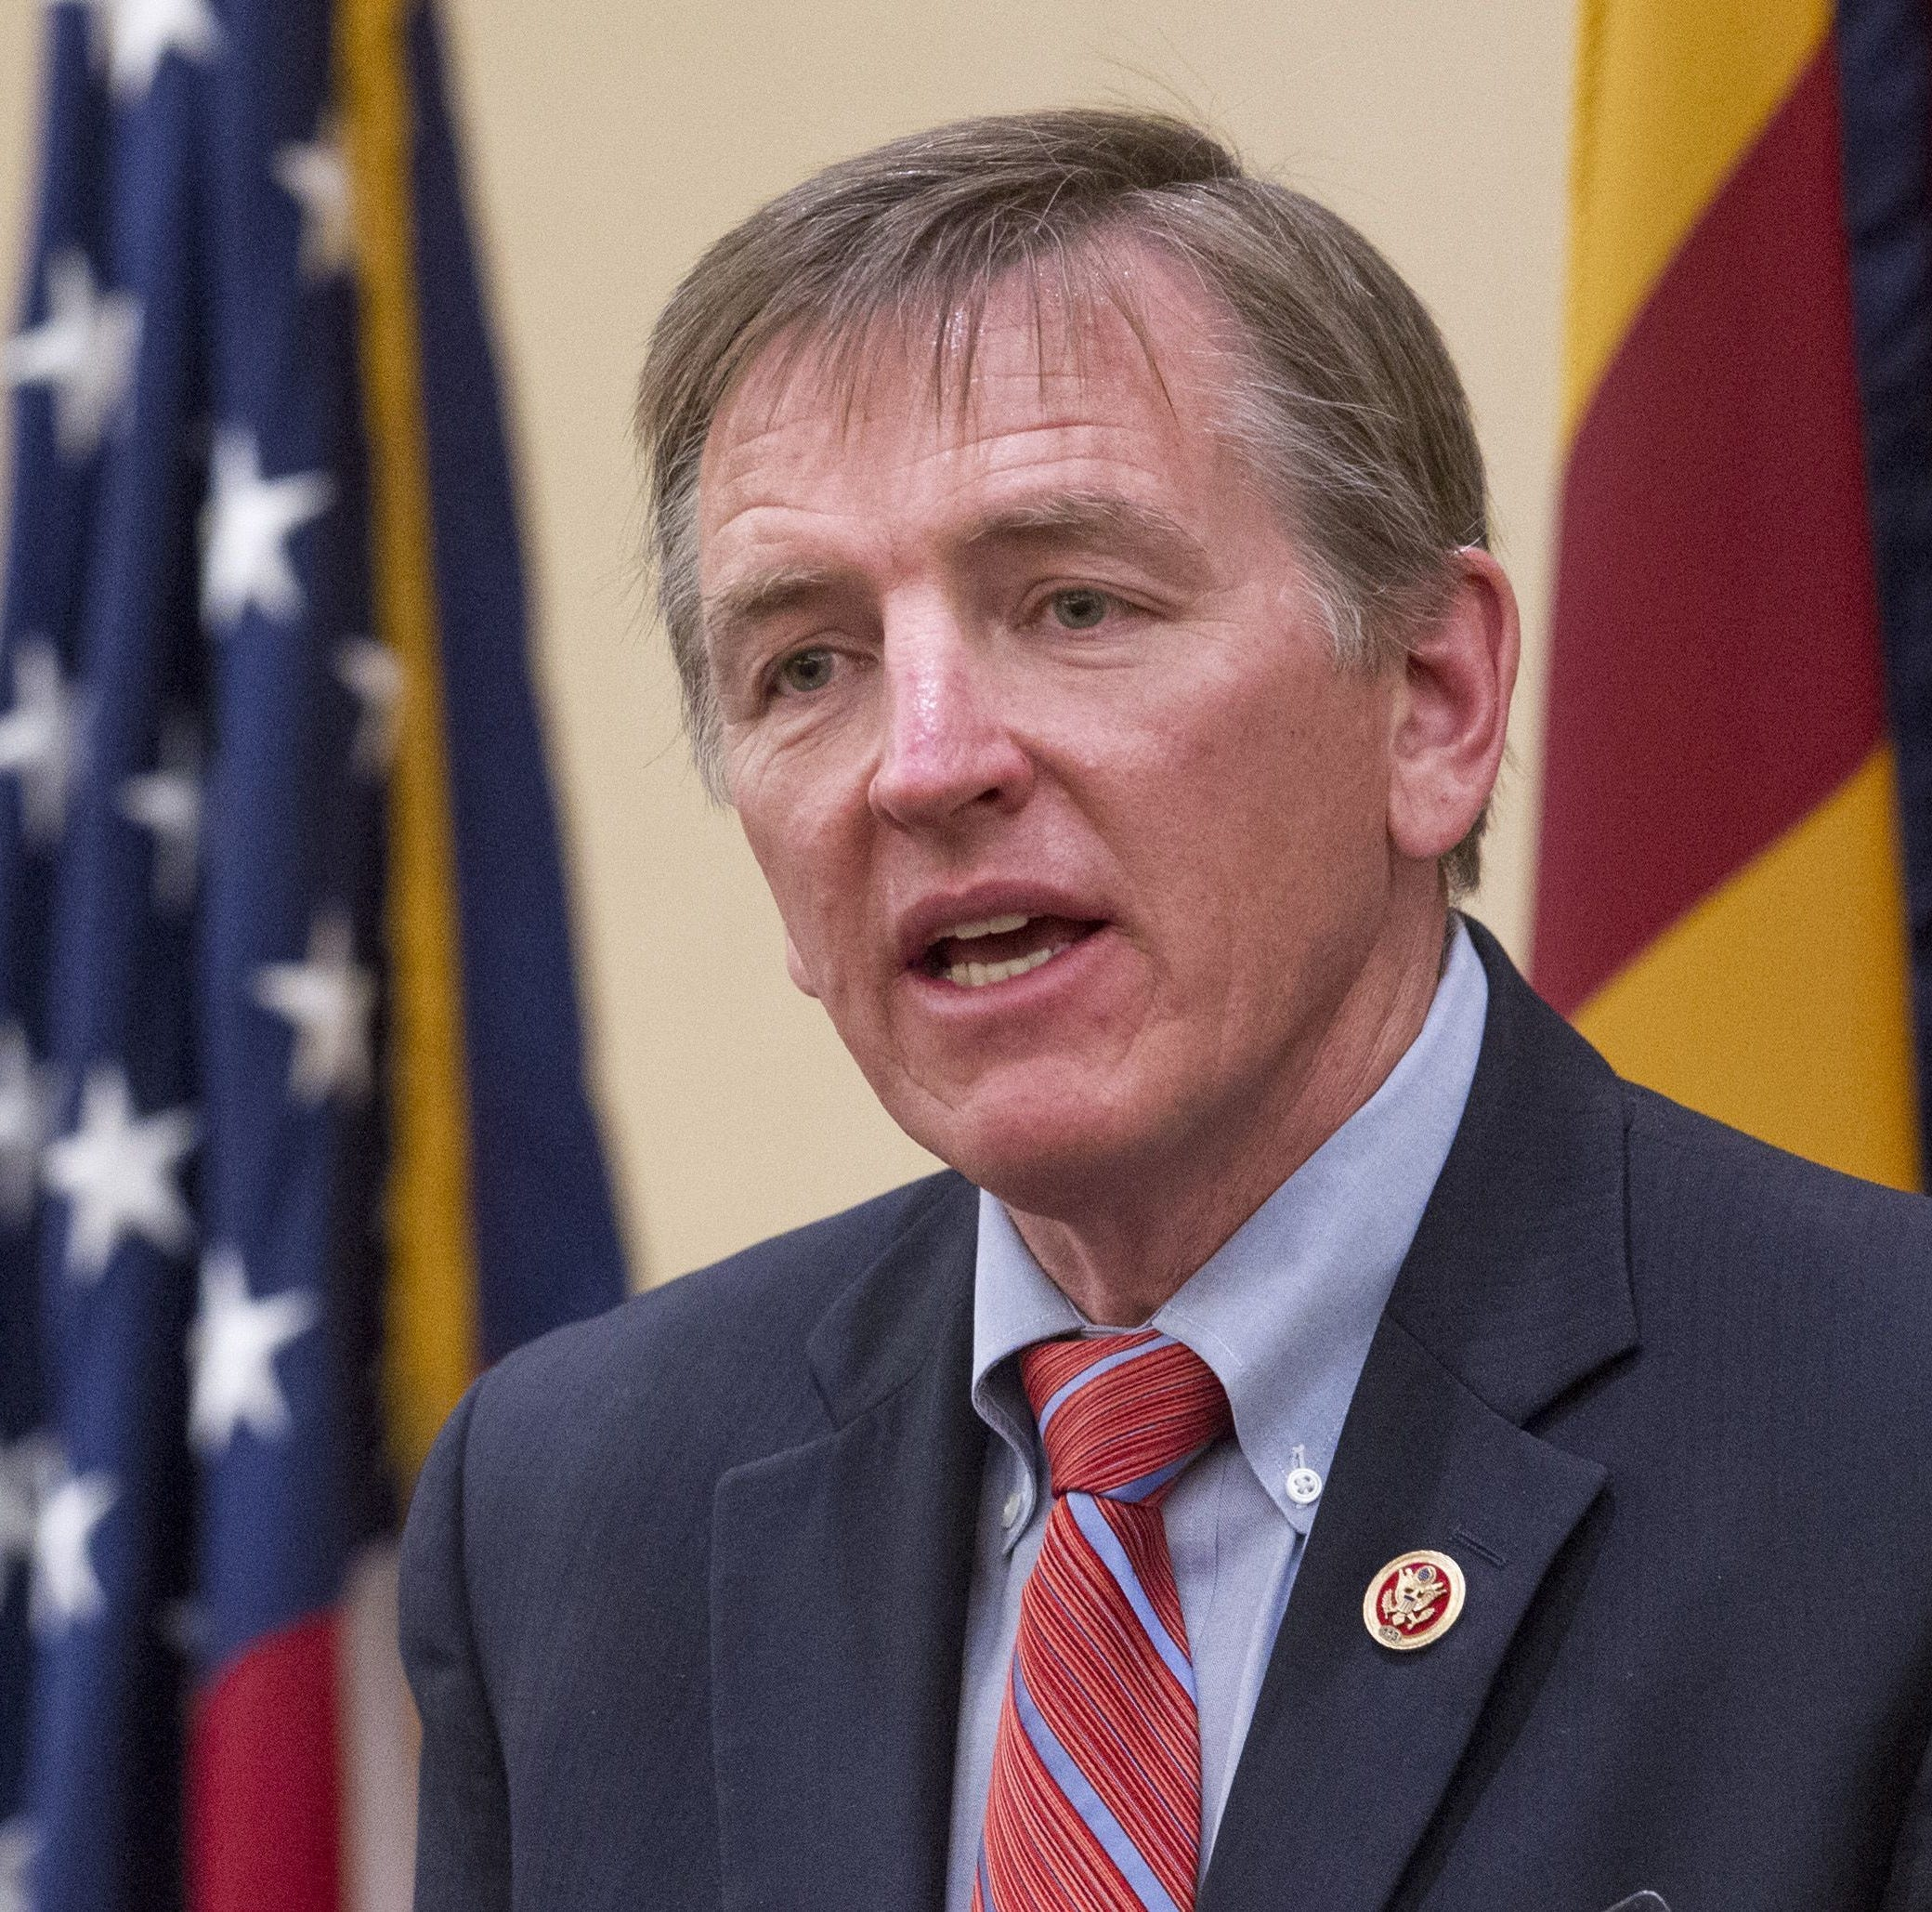 Arizona's Rep. Paul Gosar spends more on travel than almost everyone on Capitol Hill